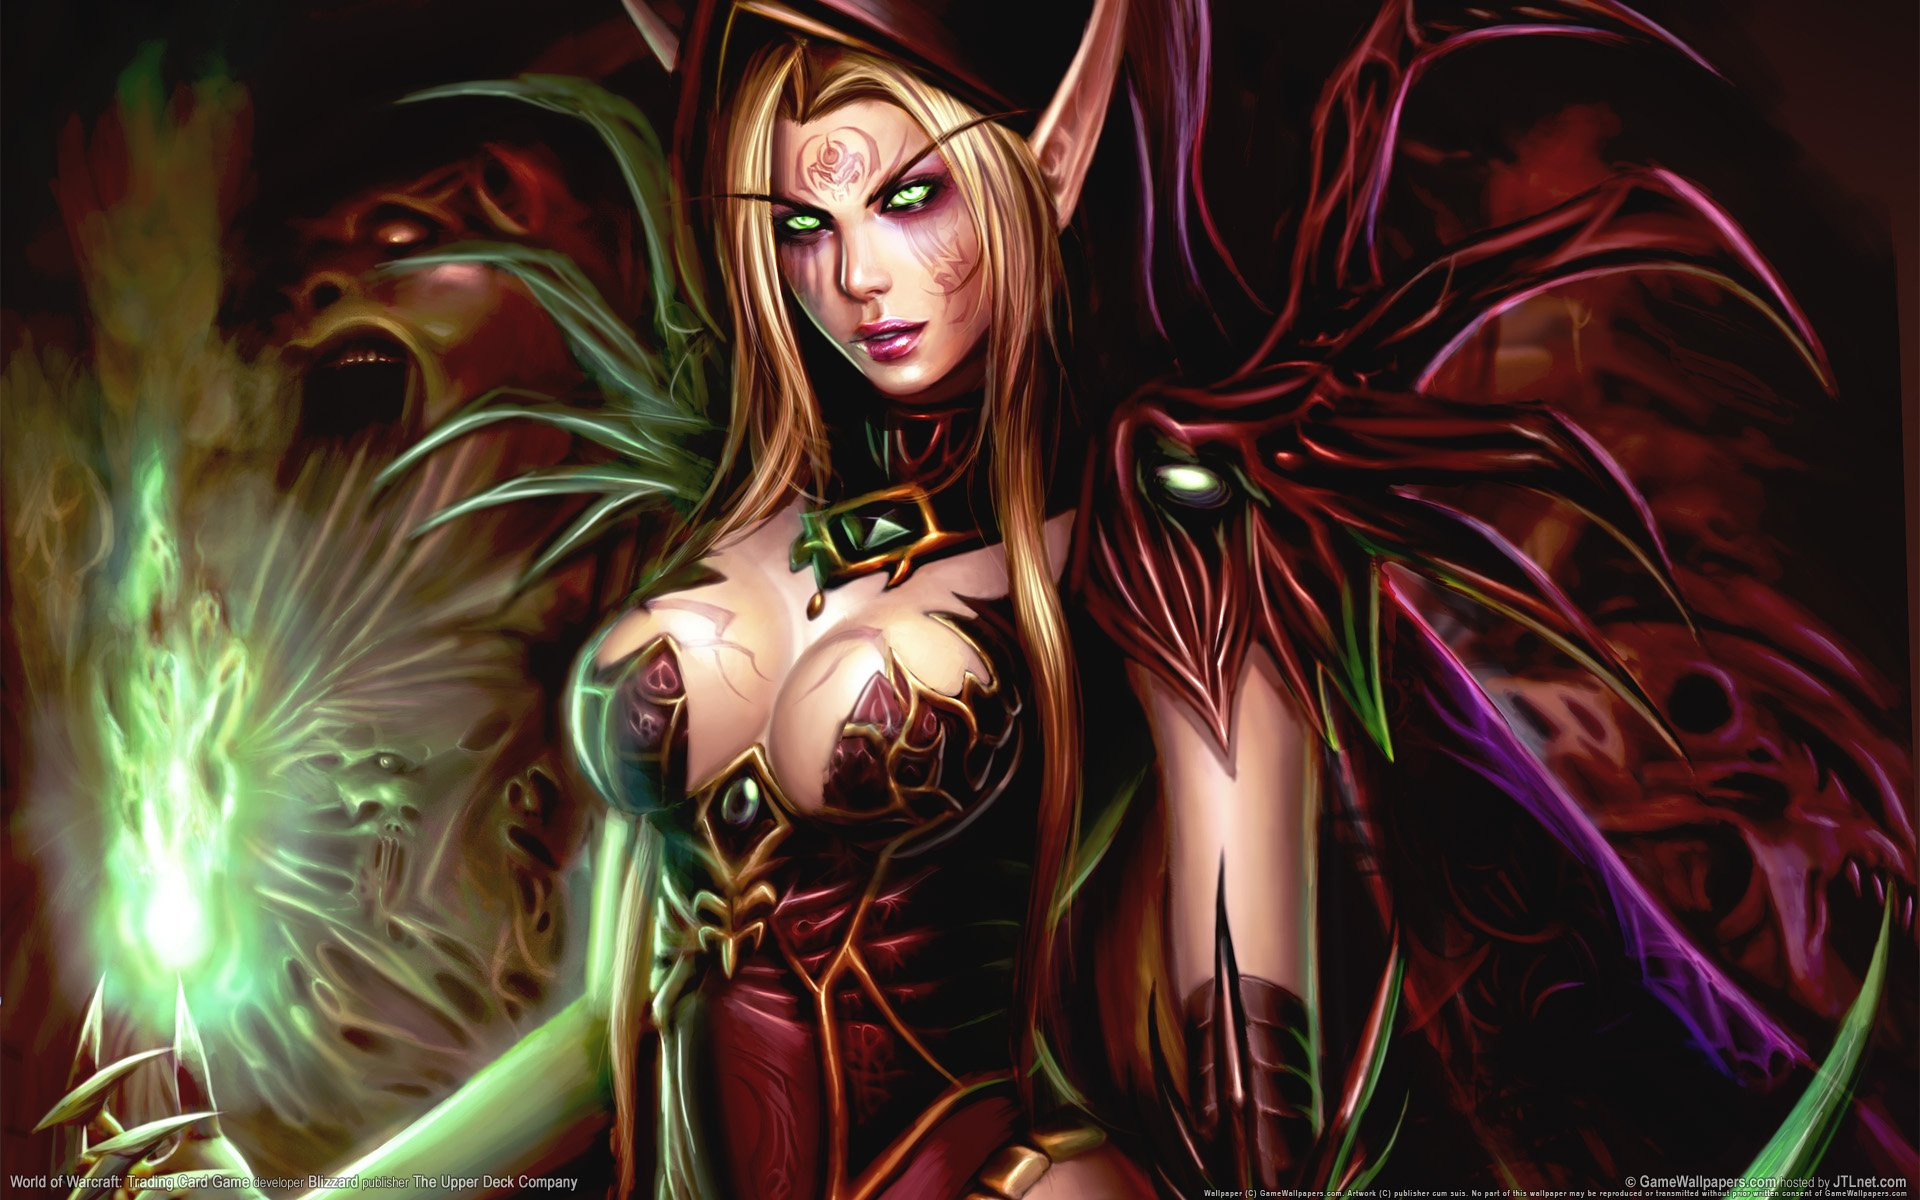 Warcraft elf hentai hd cartoon image